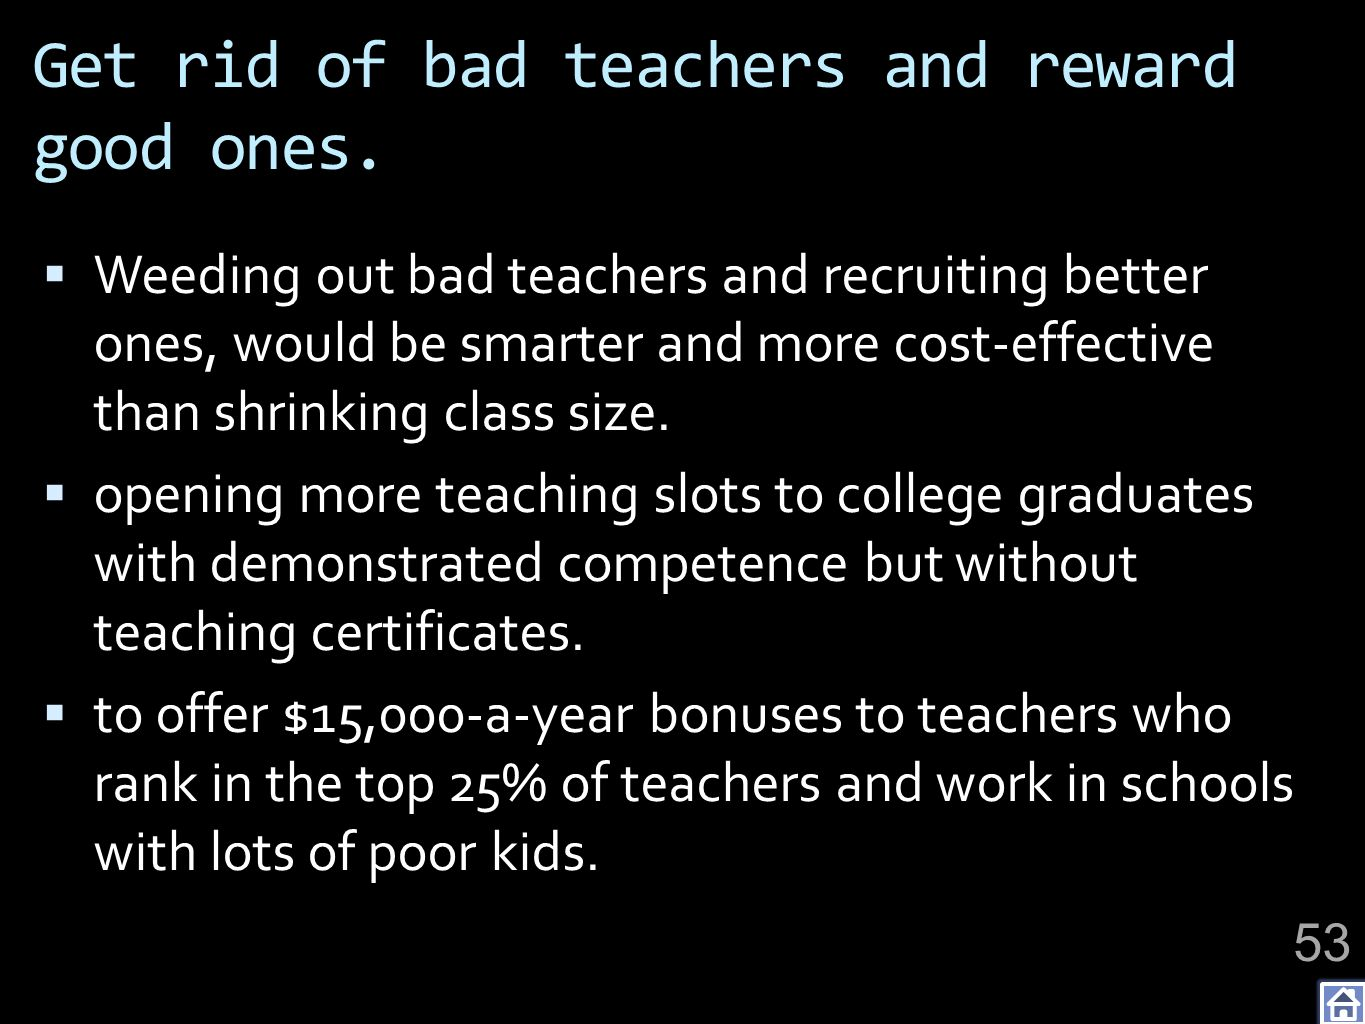 Get rid of bad teachers and reward good ones.